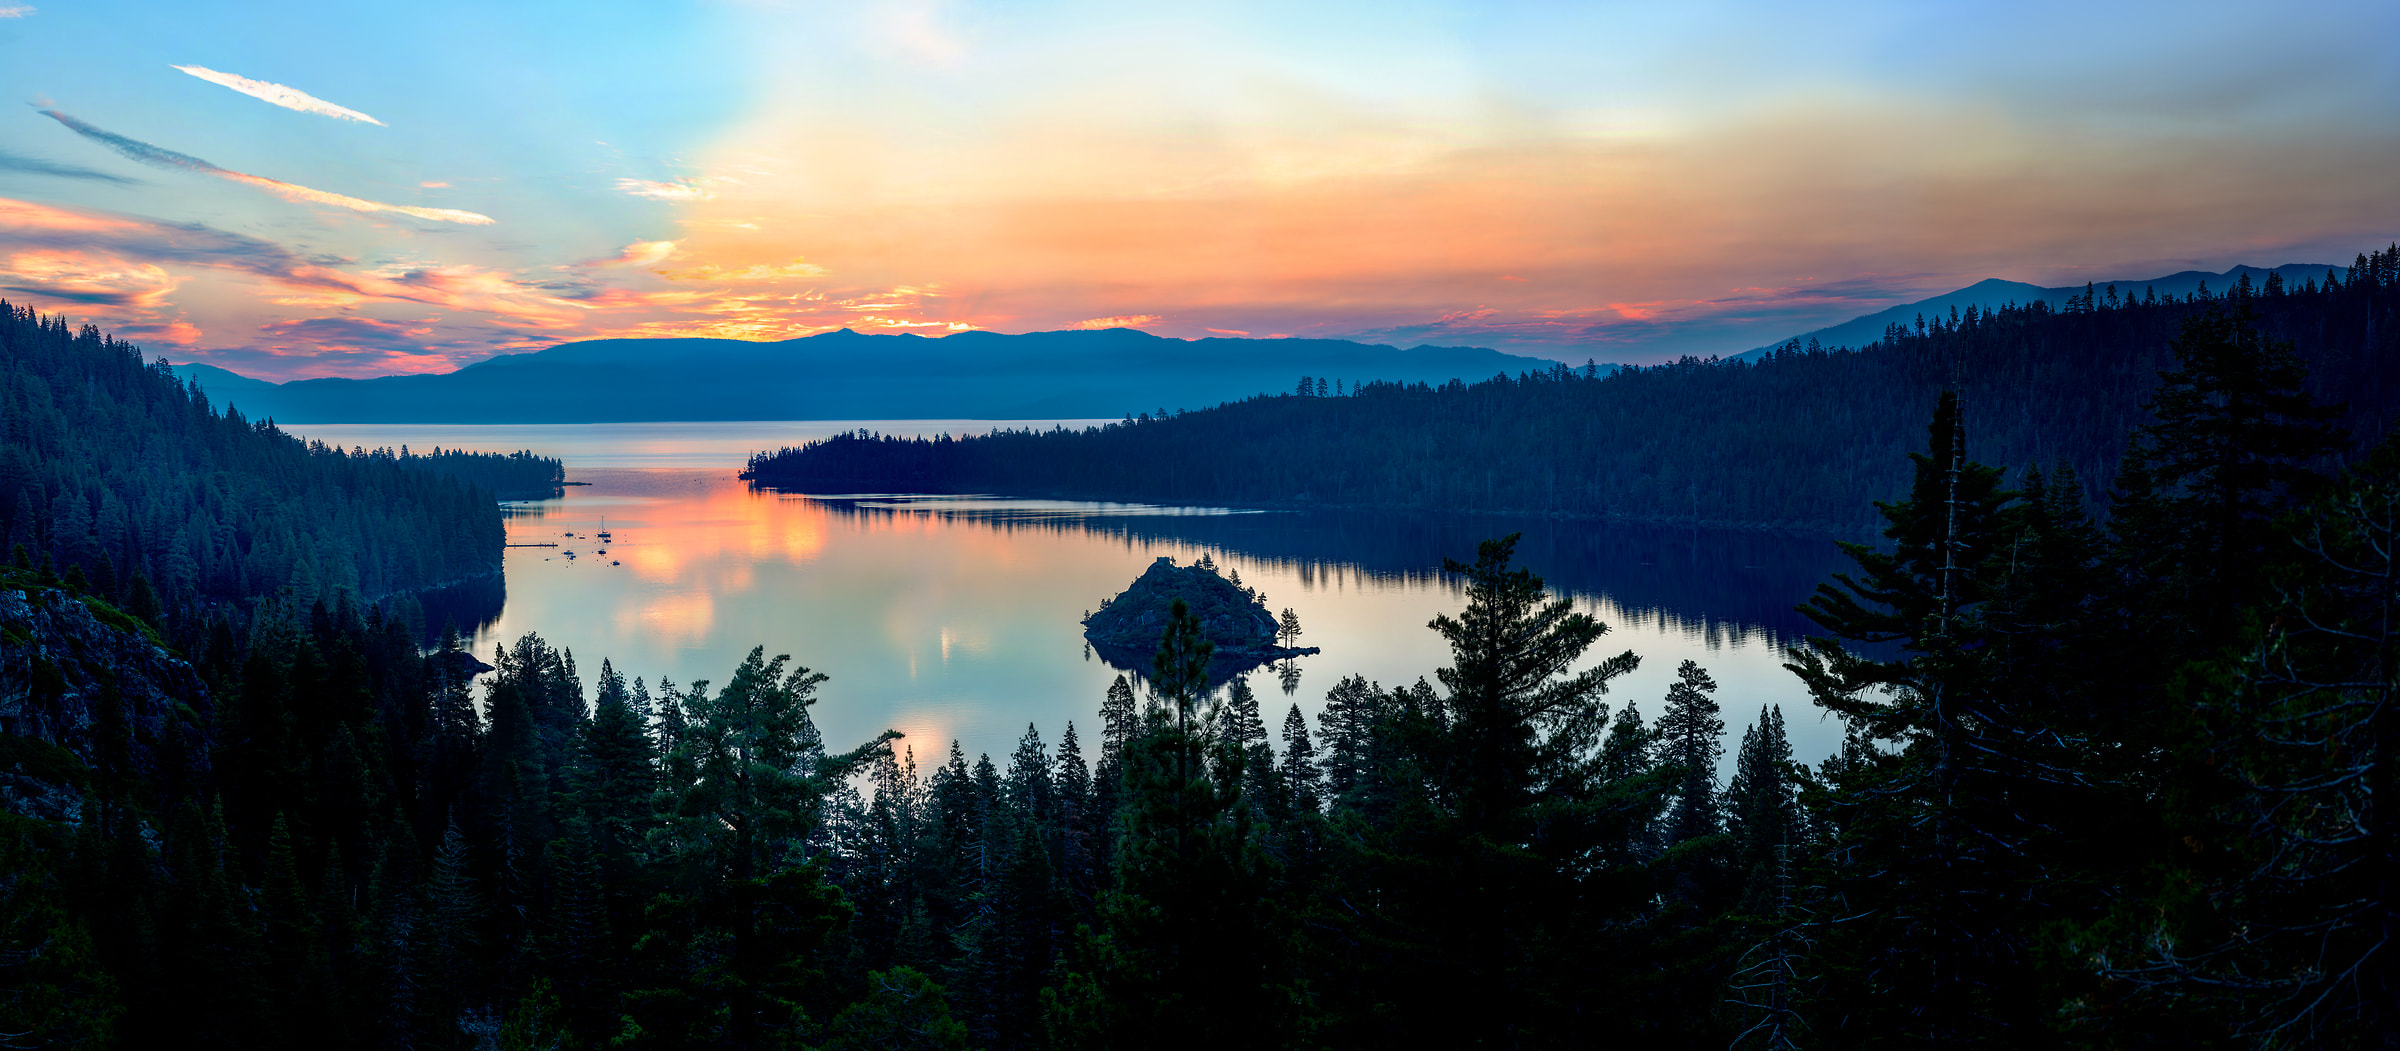 896 megapixels! A very high resolution, large-format VAST photo print of a lake; landscape photograph created by Justin Katz in Emerald Bay, Lake Tahoe, California